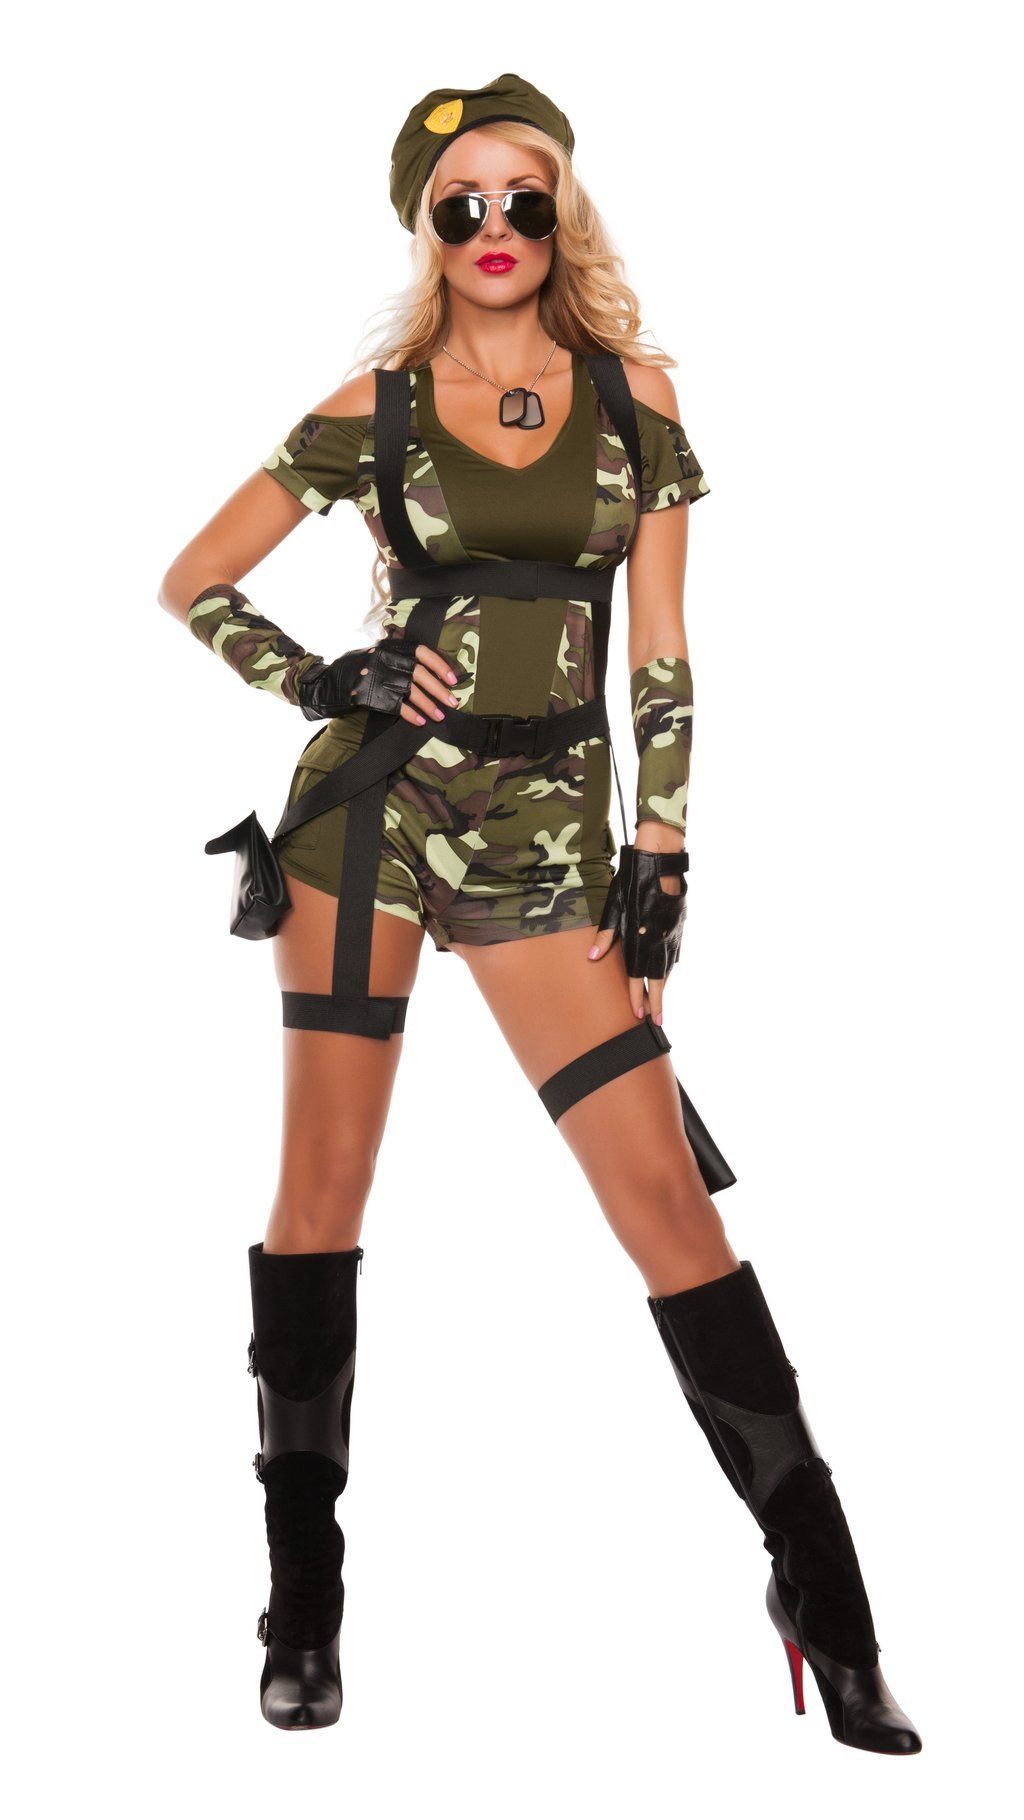 Pin on Military and Patriotic Women's Costumes